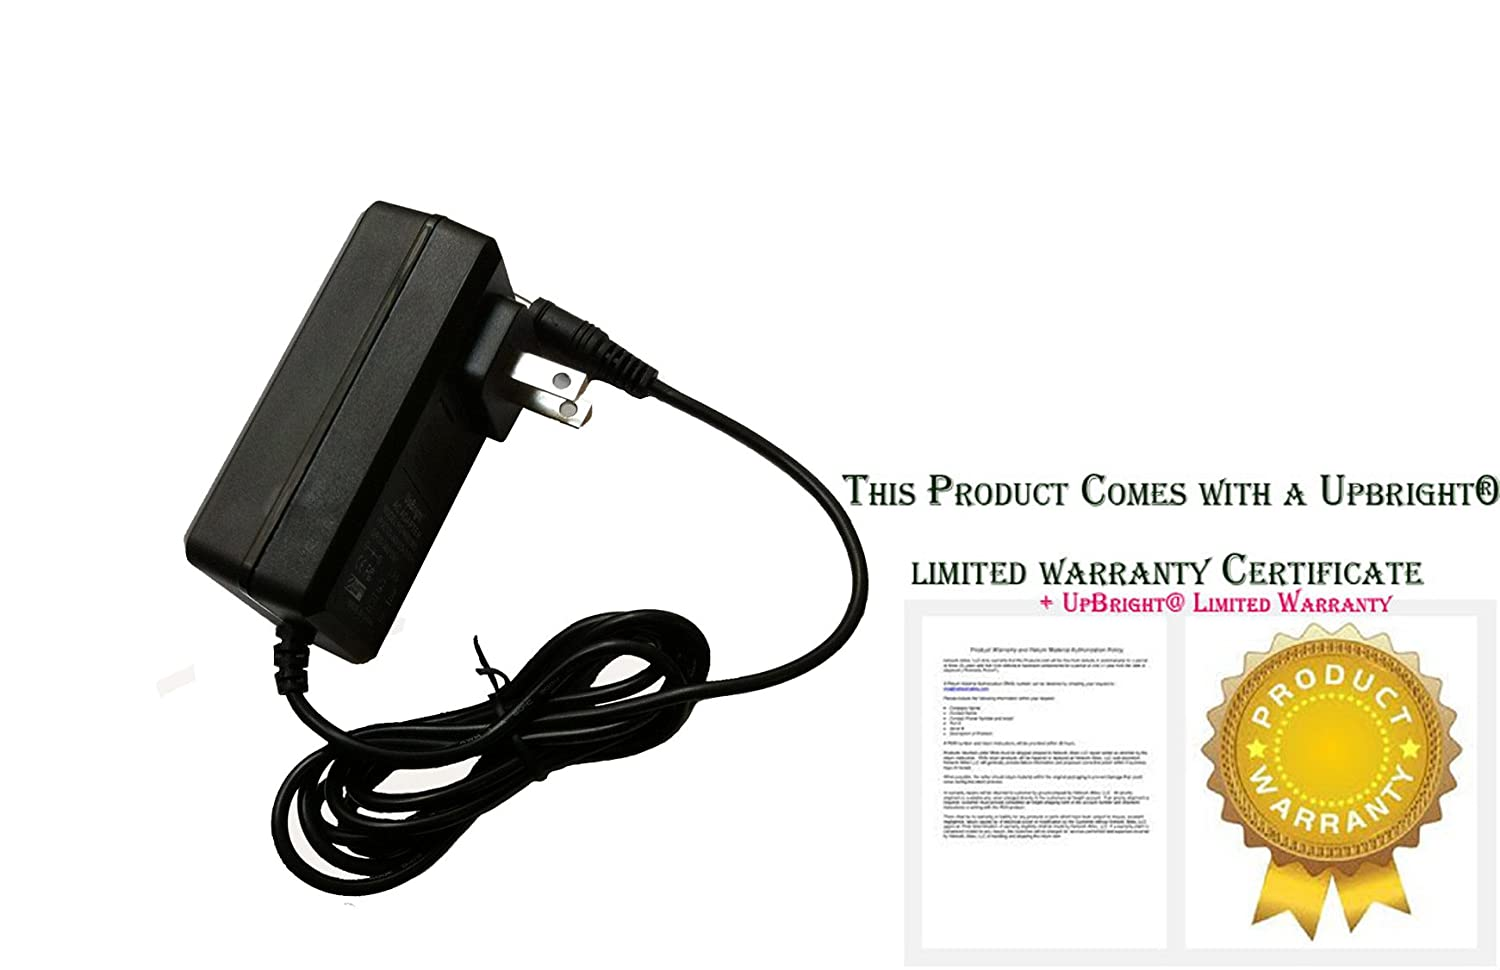 71A7RrTHxnL._SL1500_ amazon com upbright new ac dc adapter for element electronics  at creativeand.co